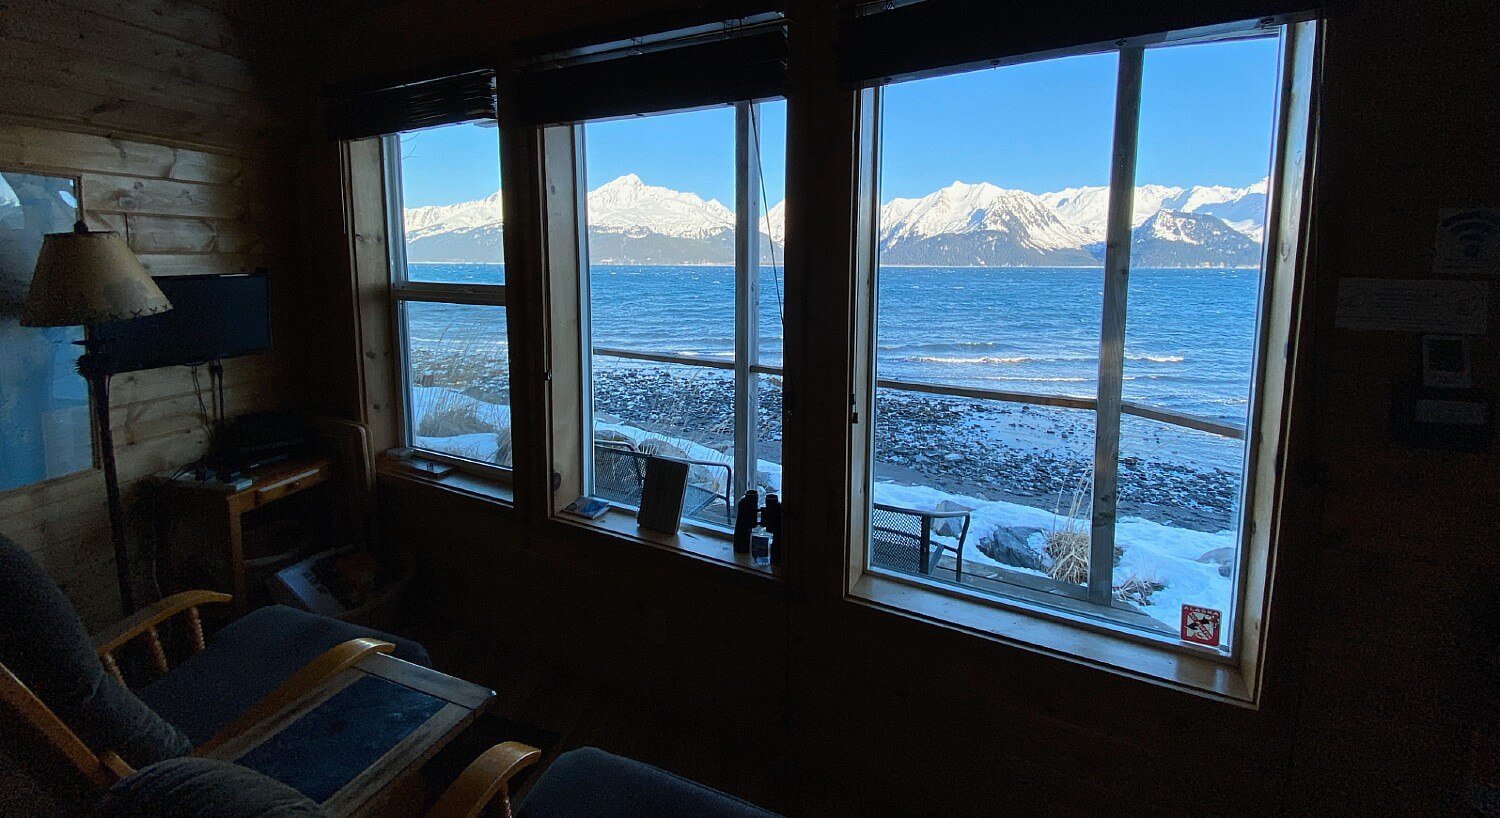 Two glider rockers sitting in front of three large windows overlooking a bay and snow-capped mountains in winter